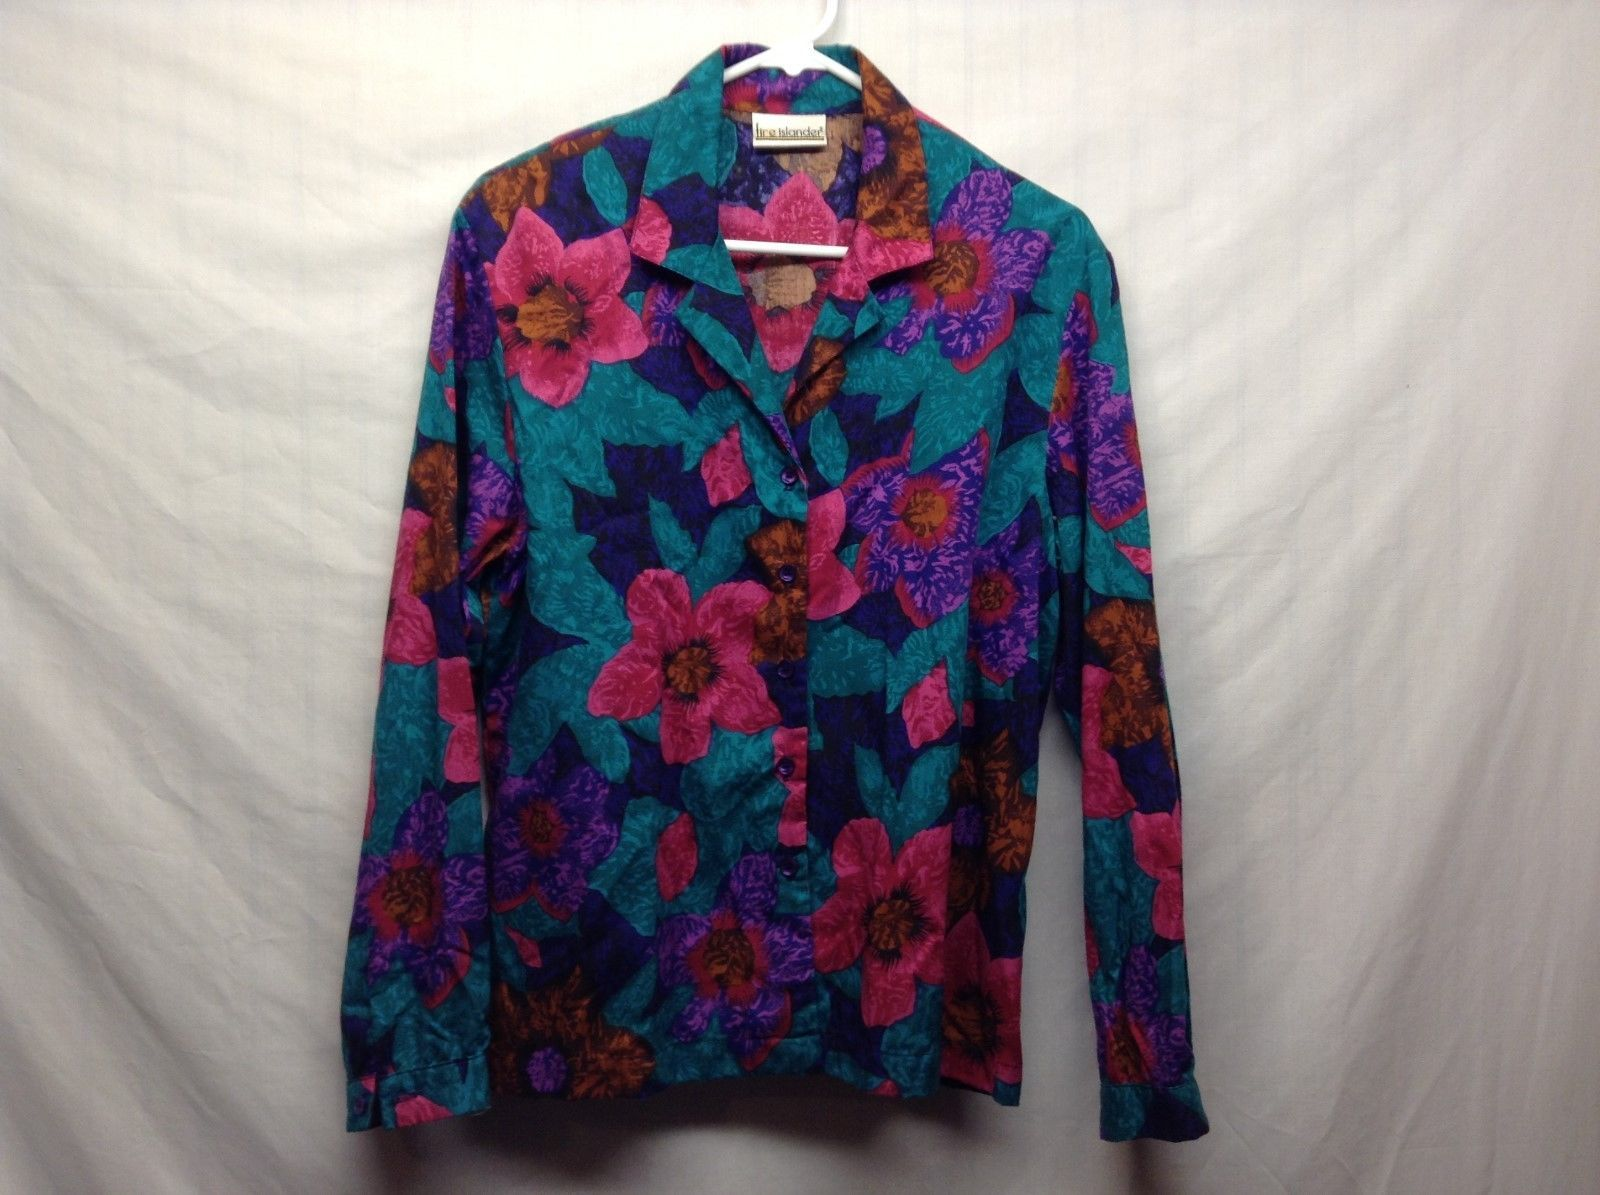 Ladies Fire Island Multicolored Floral Blouse